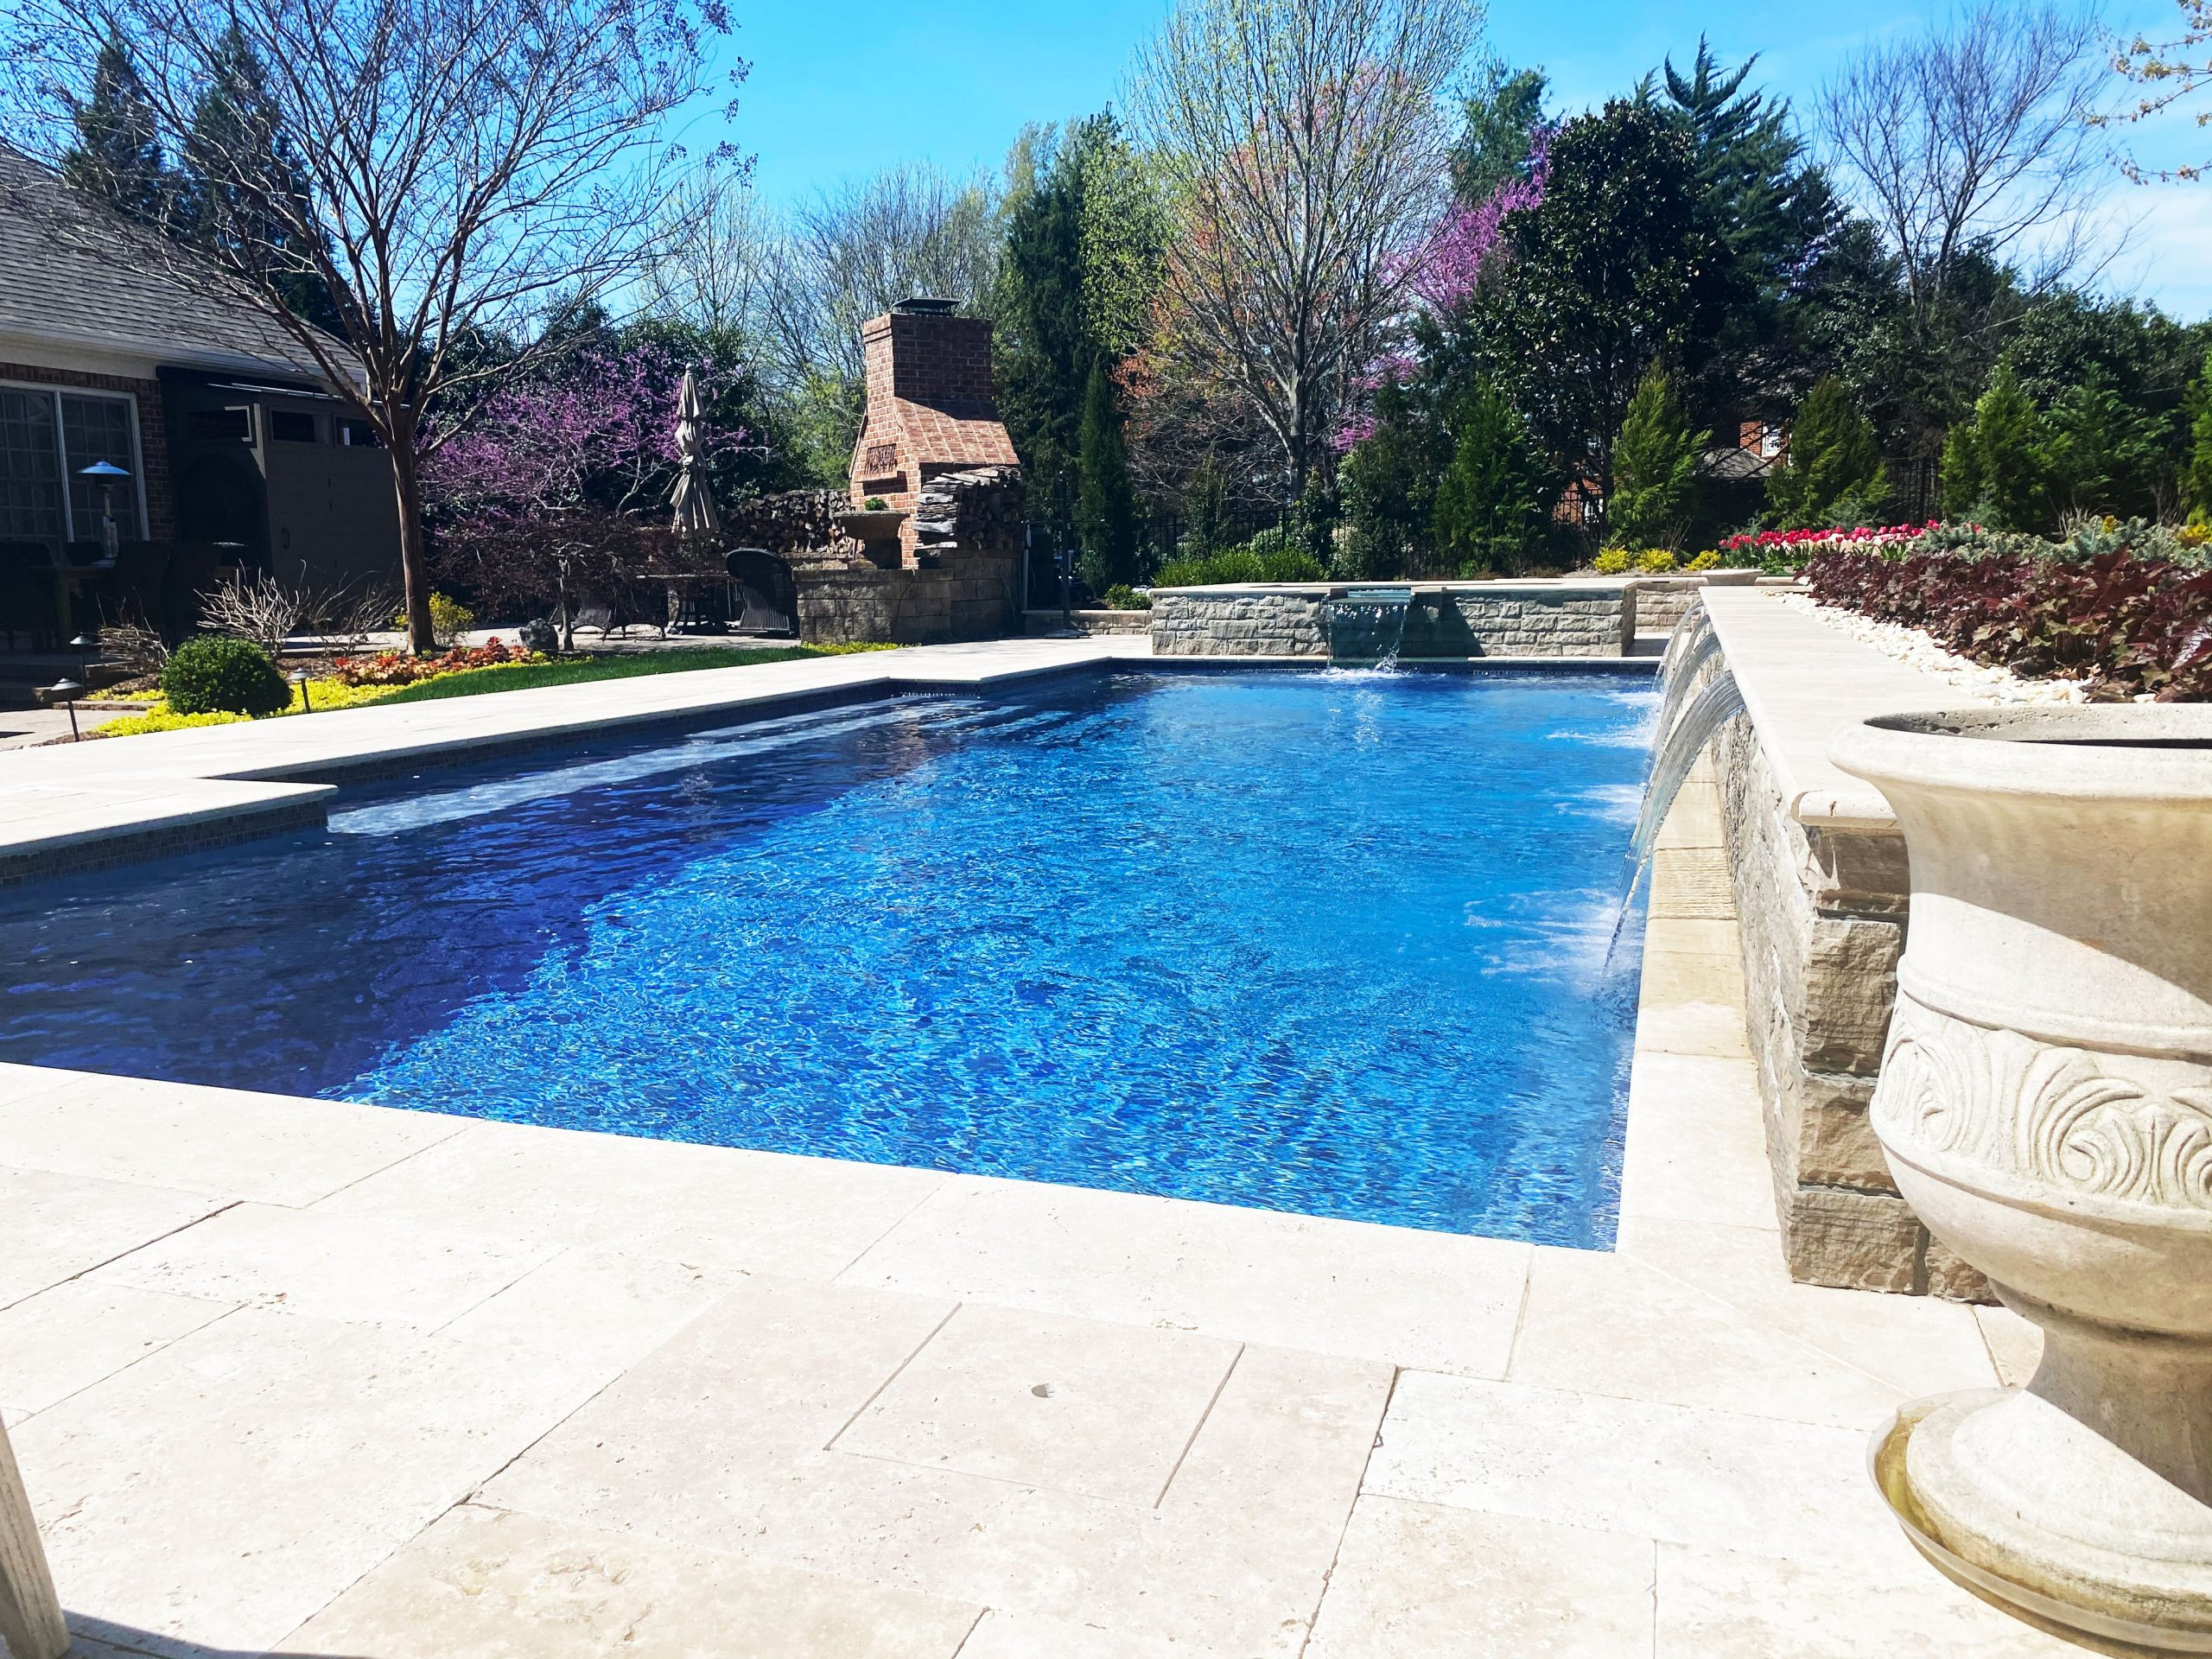 Franklin stone pool and spa with running water features